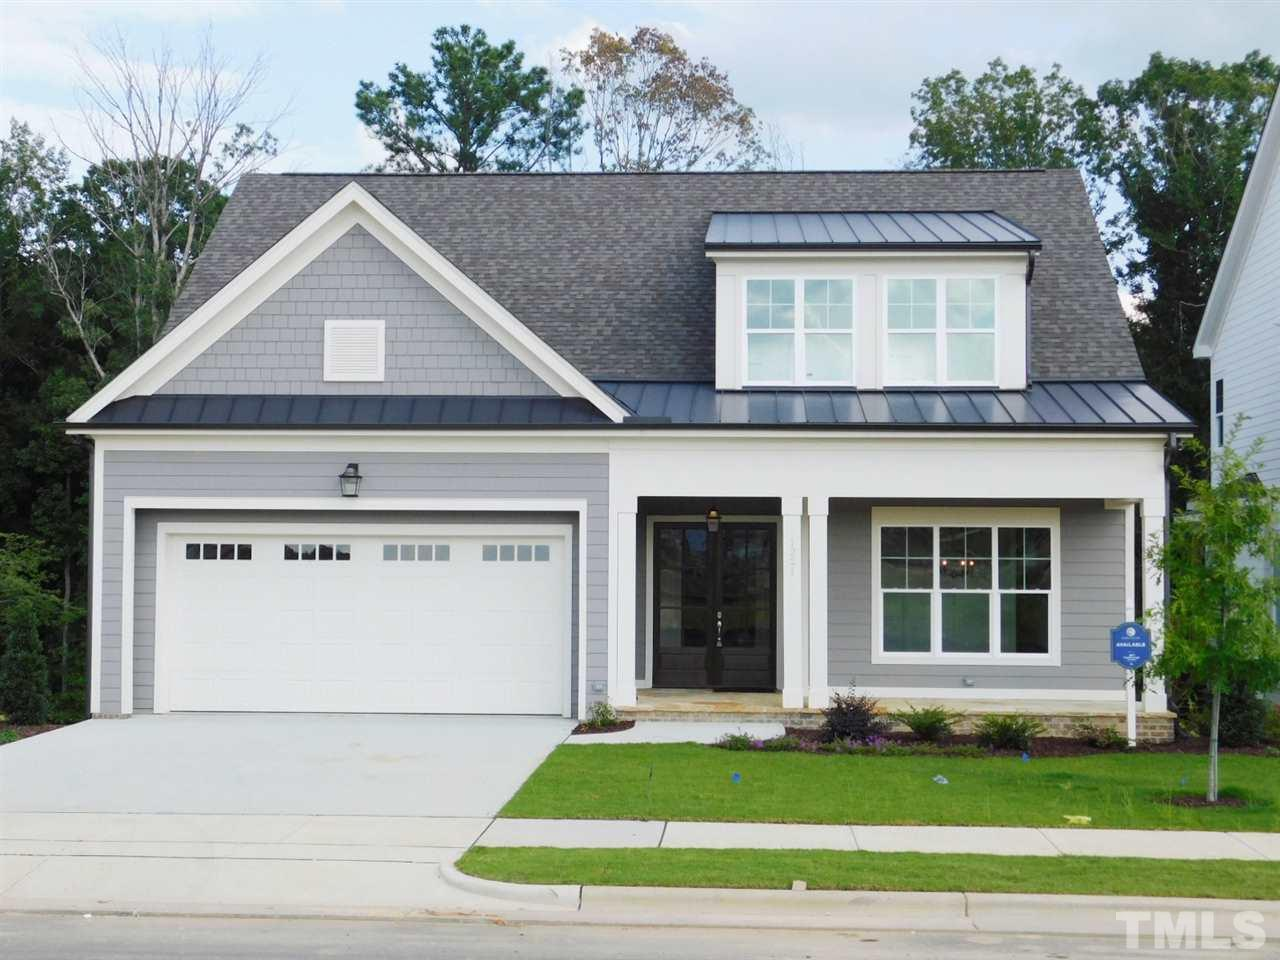 Charming Custom Home w/Finished Basement! Trayed 1st Flr Master w/Accent Wall & Impressive Master Bath! Guest Bdrm on 1st Flr! Gourmet Kit w/SS Appls & Granite Tops! Open Flr Plan! Large Fam Rm Overlooking Wall of Windows to Screen Porch! Cute Mud Rm/Arrival Center! 2 Bdrms w/Private Bths & Tons of Storage on 2nd Flr! Huge Basement w/2 distinct Living Space! 2 Possible Additional Bdrms in Basement! Workshop w/Outside Access perfect for Storage & Lawn Equipment! Large Screen Porch & Patio! Grilling Deck!